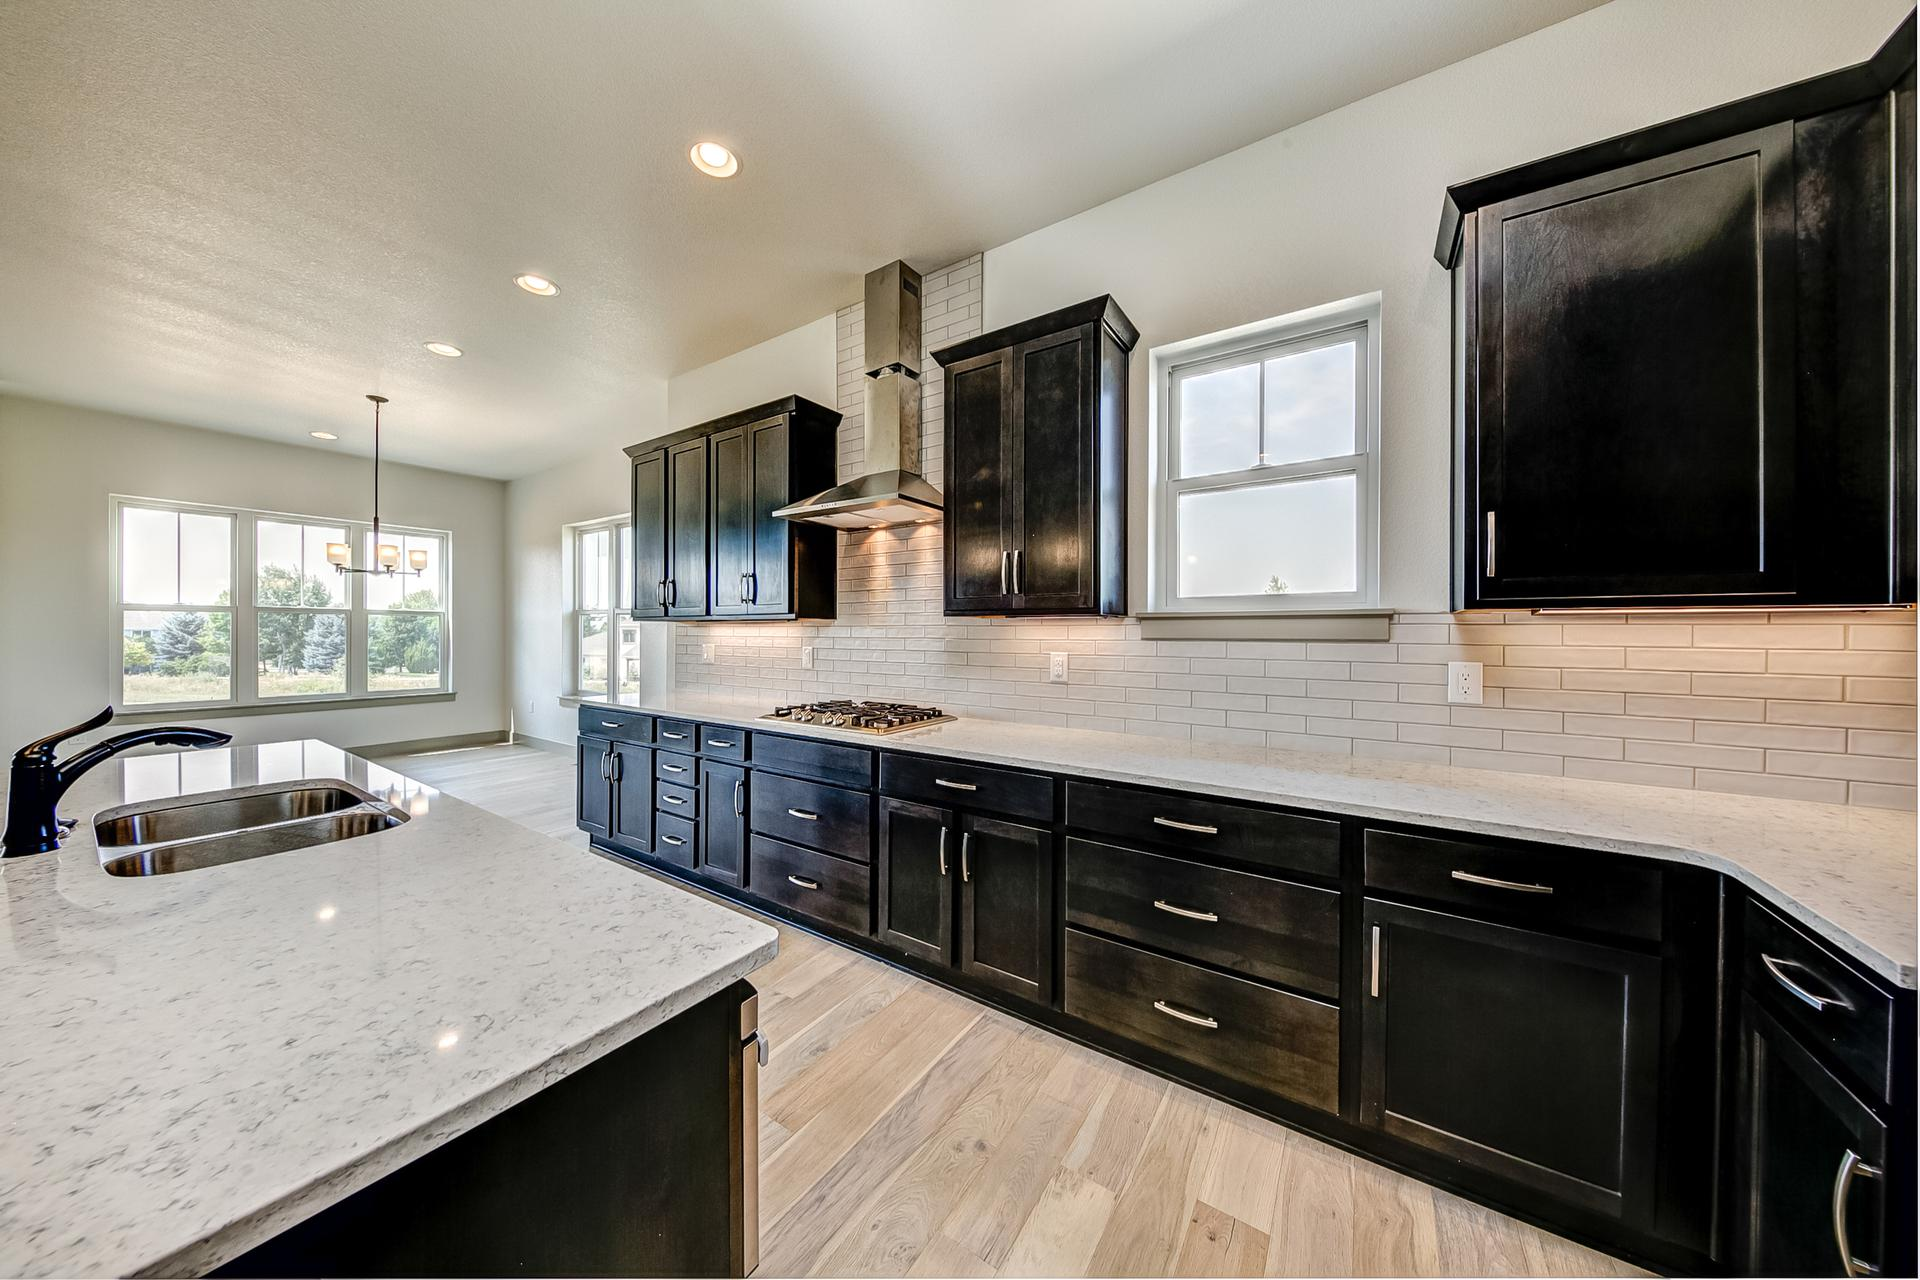 Kitchen - Not Actual Home - Finishes Will Vary . 8459 Annapolis Dr, Windsor, CO